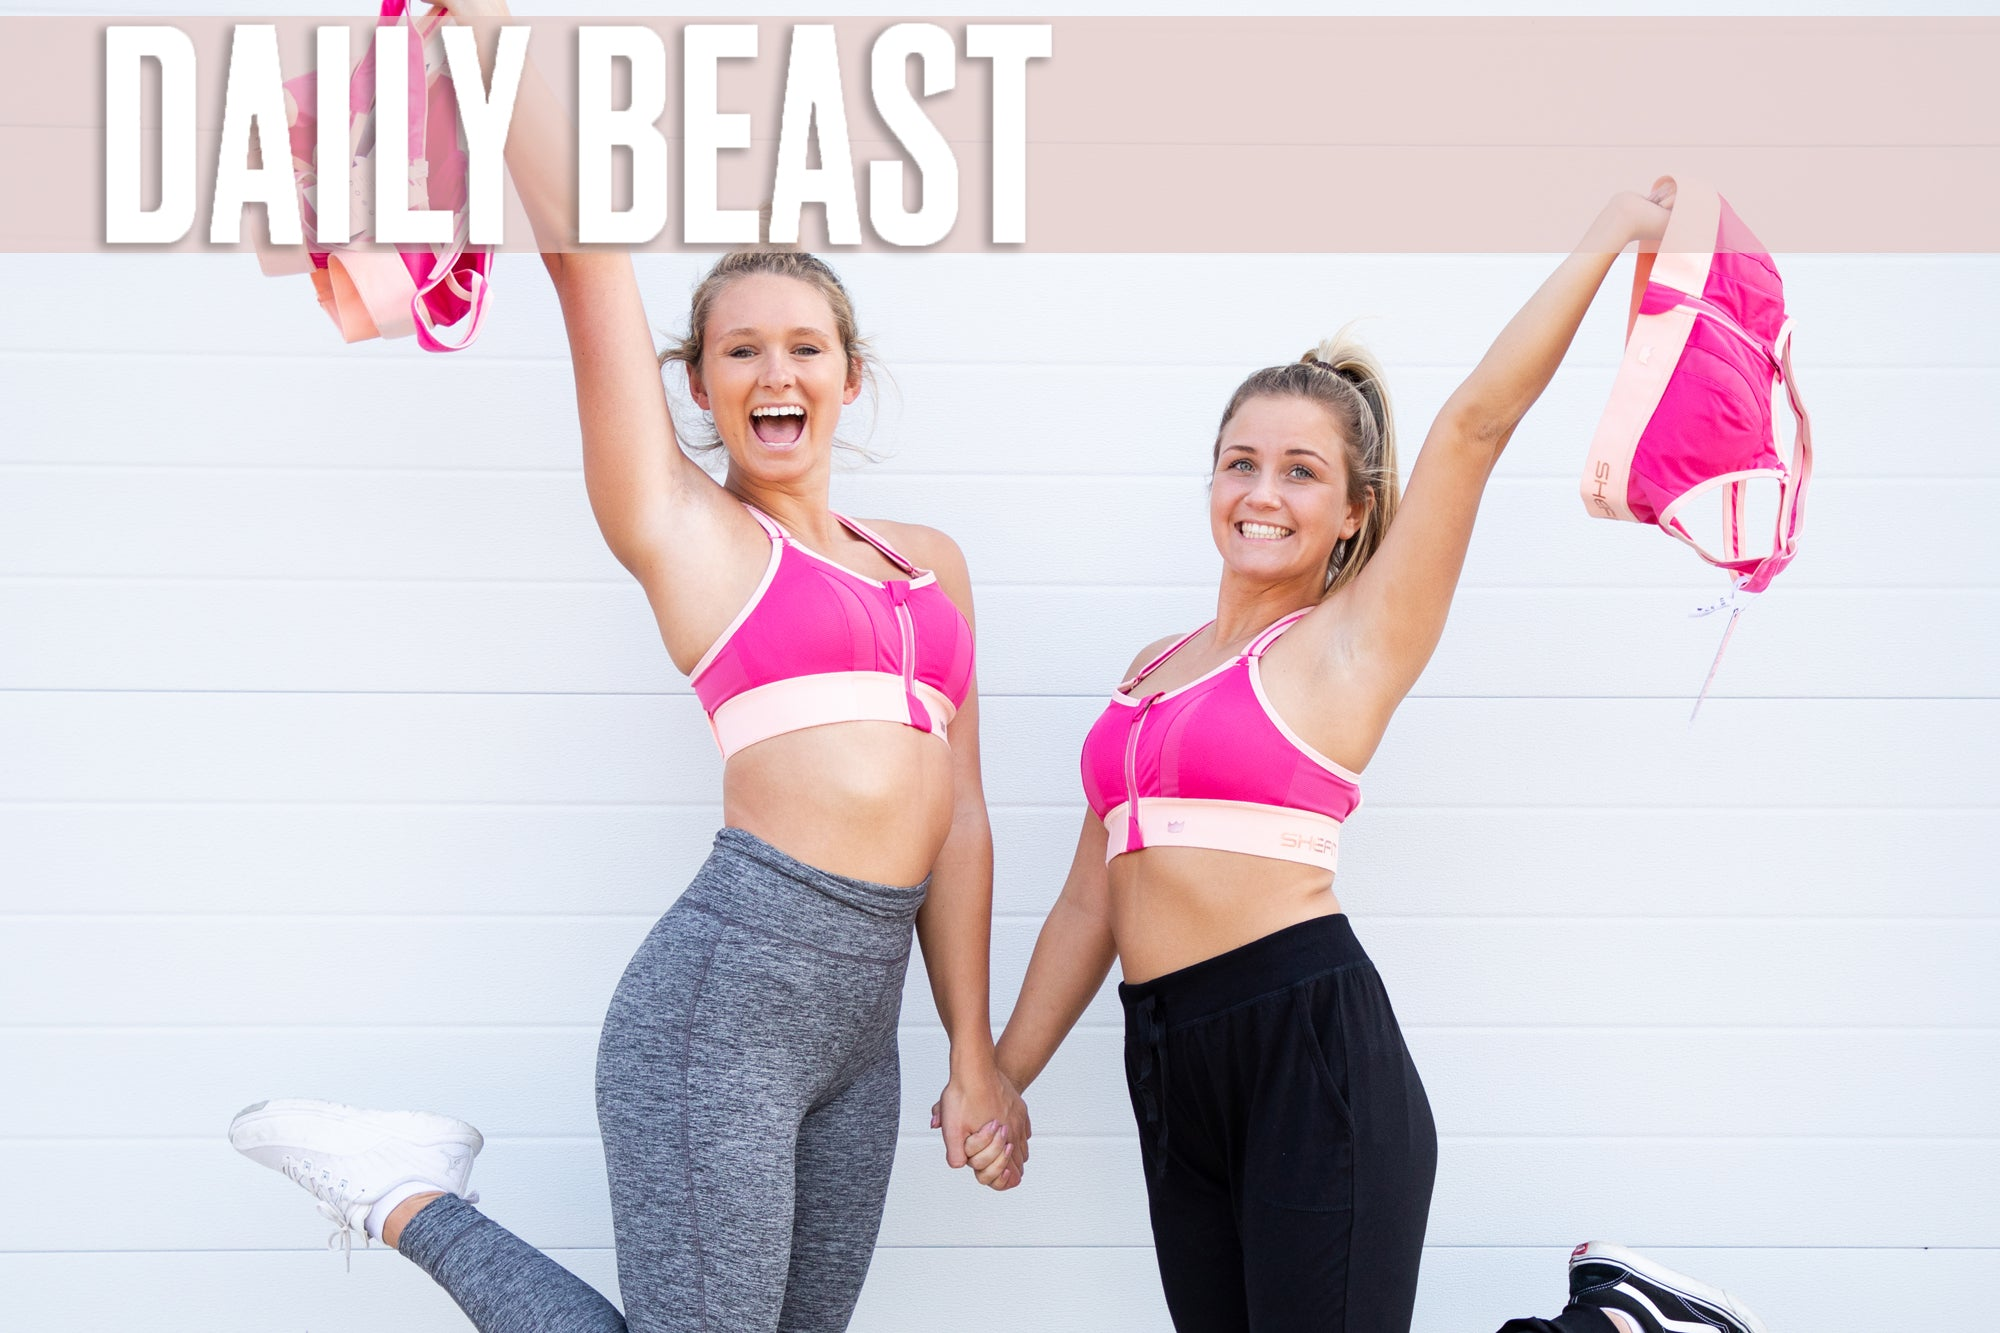 Daily Beast: Finding the Perfect Sports Bra